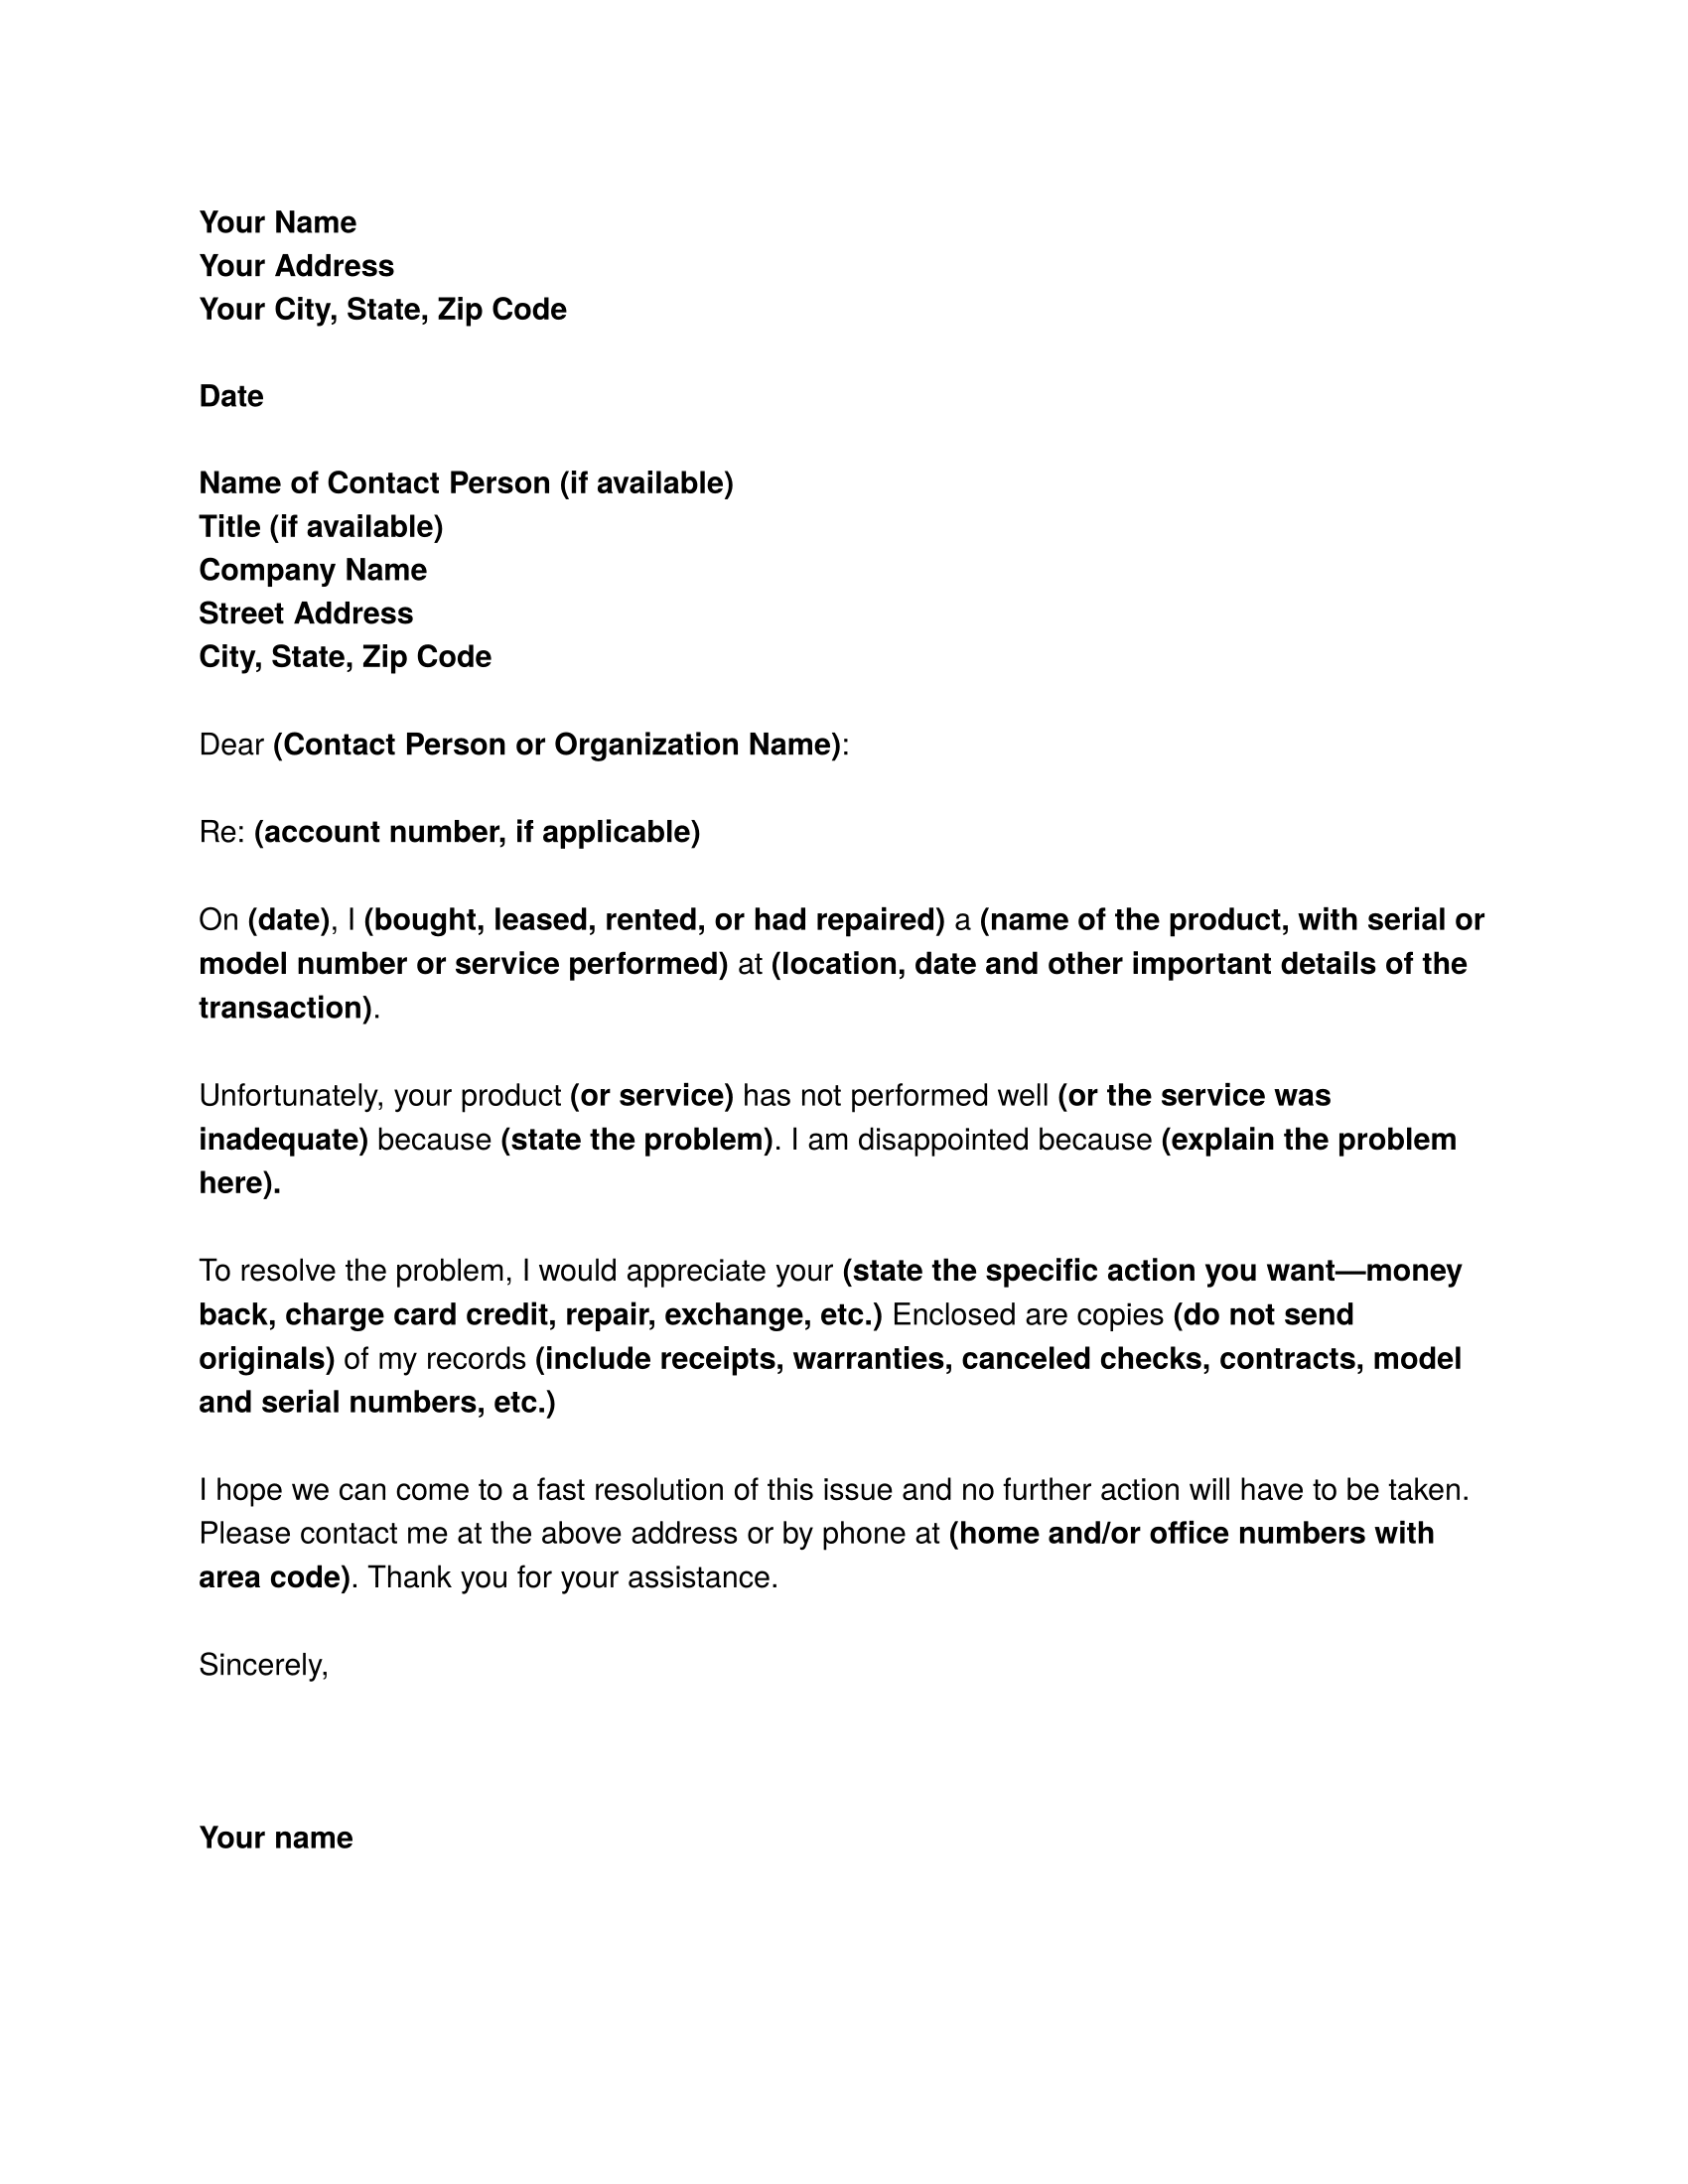 Complaint Letter Sample Download Free Business Letter Templates